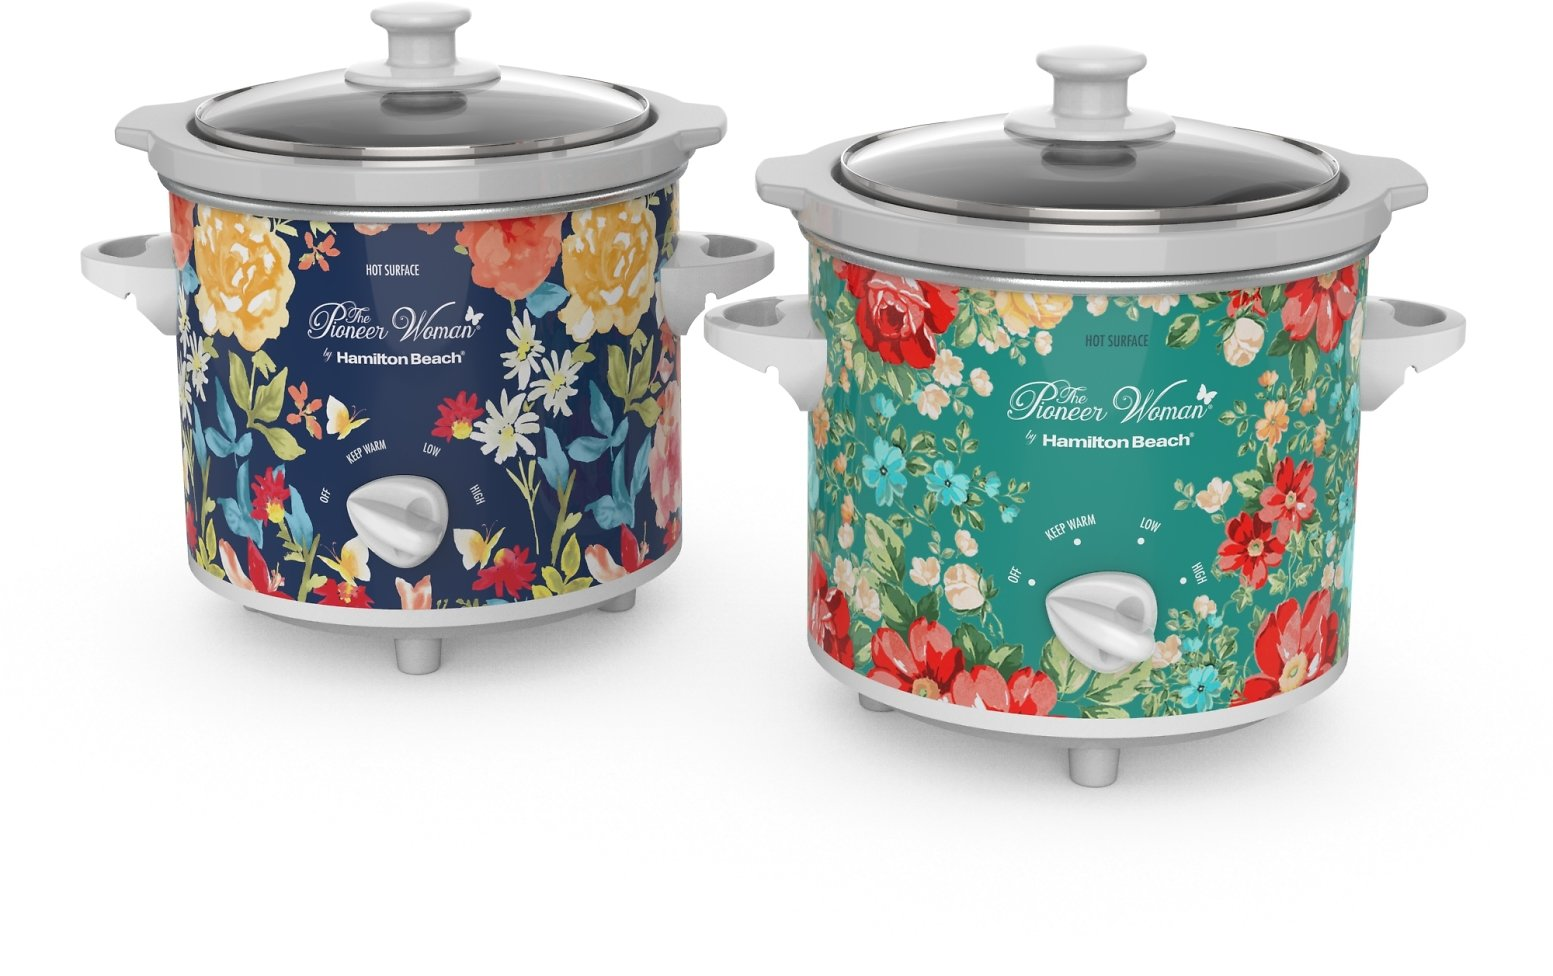 2-Count The Pioneer Woman 1.5 Quart Slow Cooker (2 Styles)